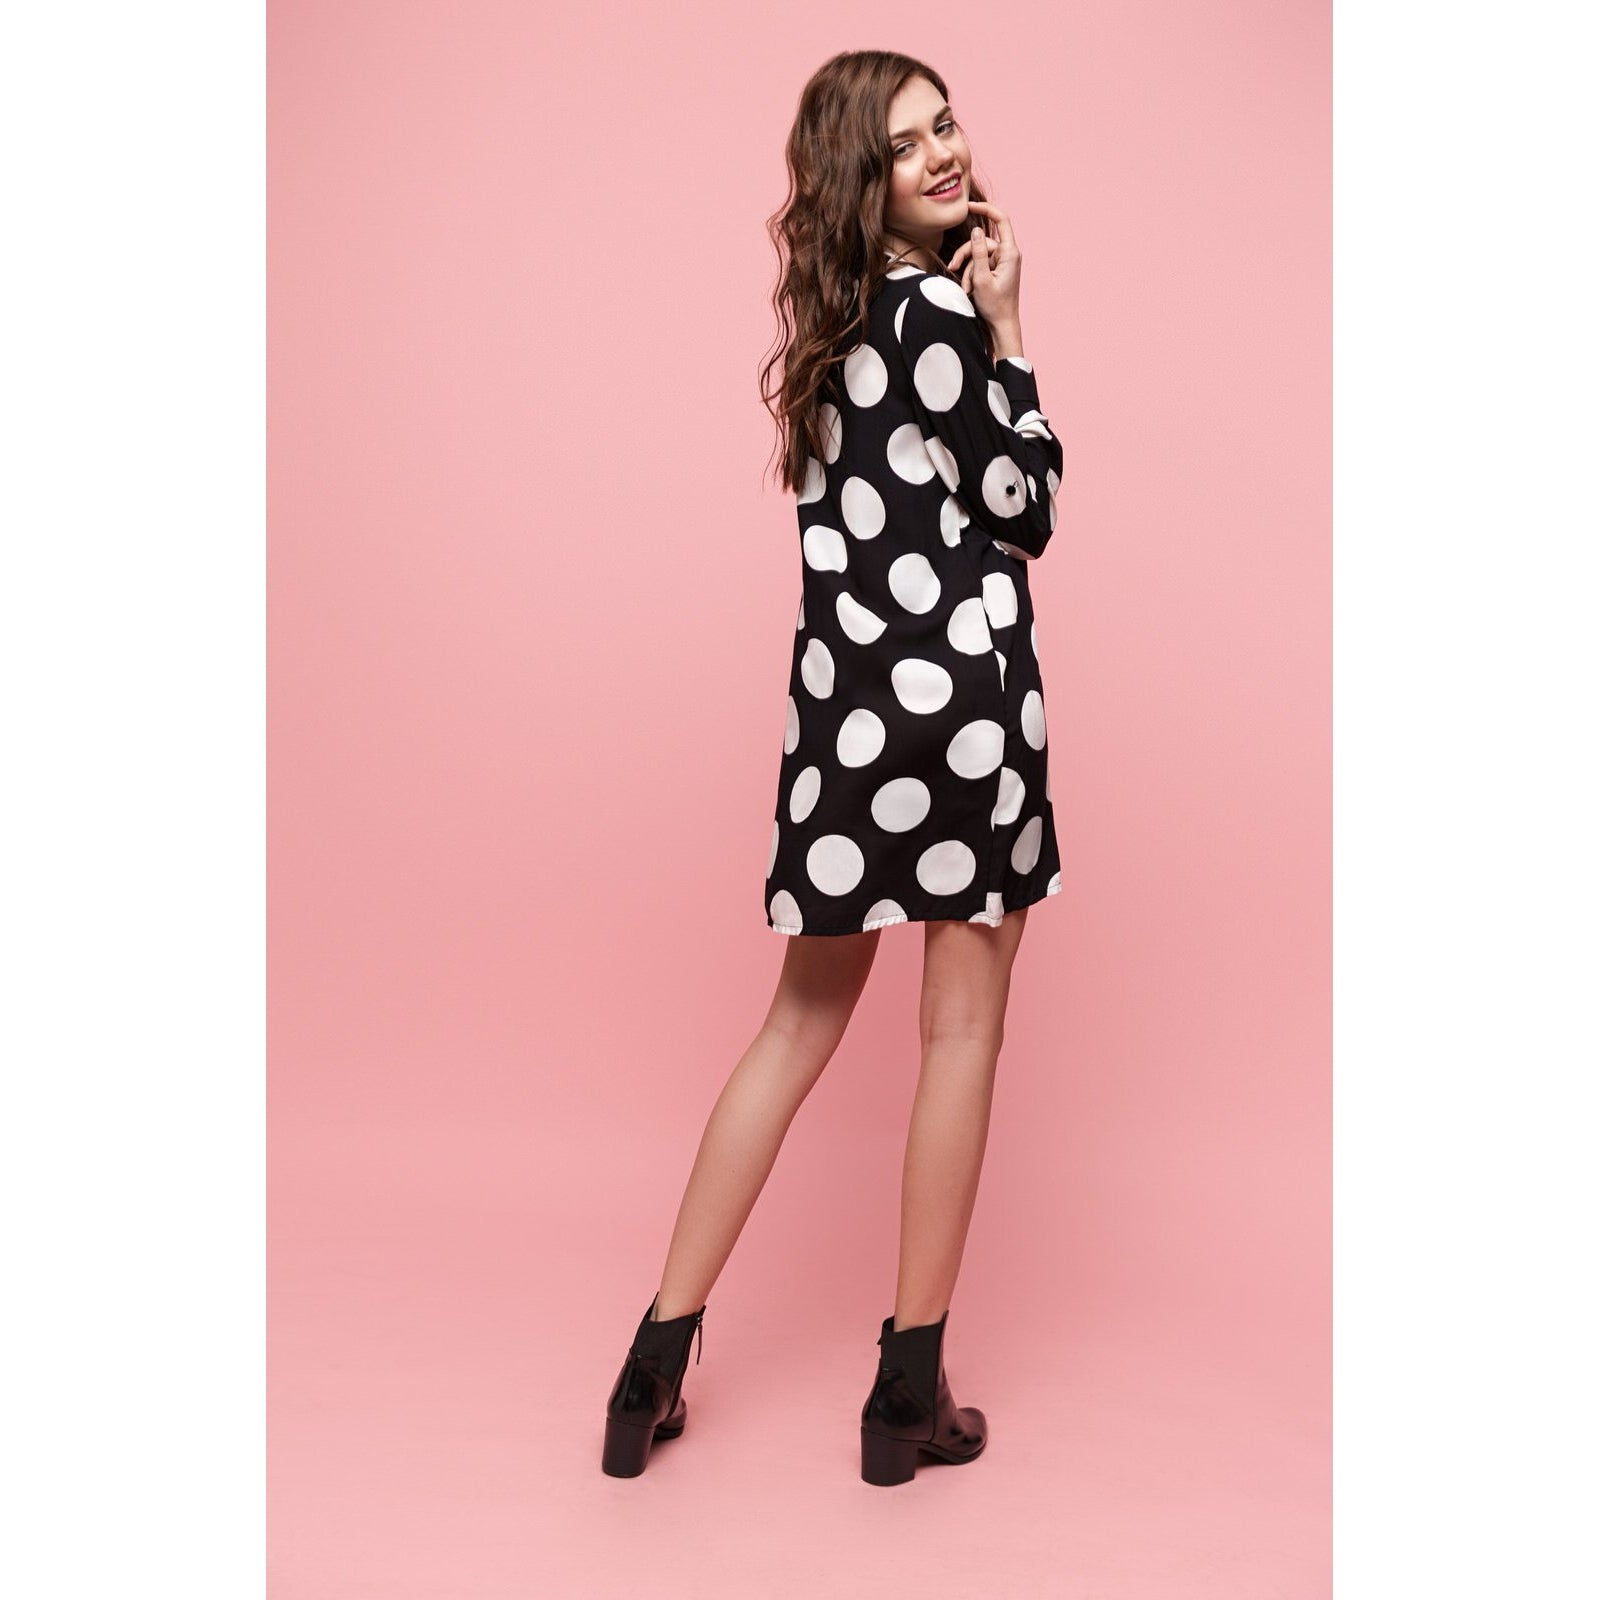 Shirt Polka Dot Cotton Dress My Black Side-OVER THE SEA-HOUSE of BOTTA